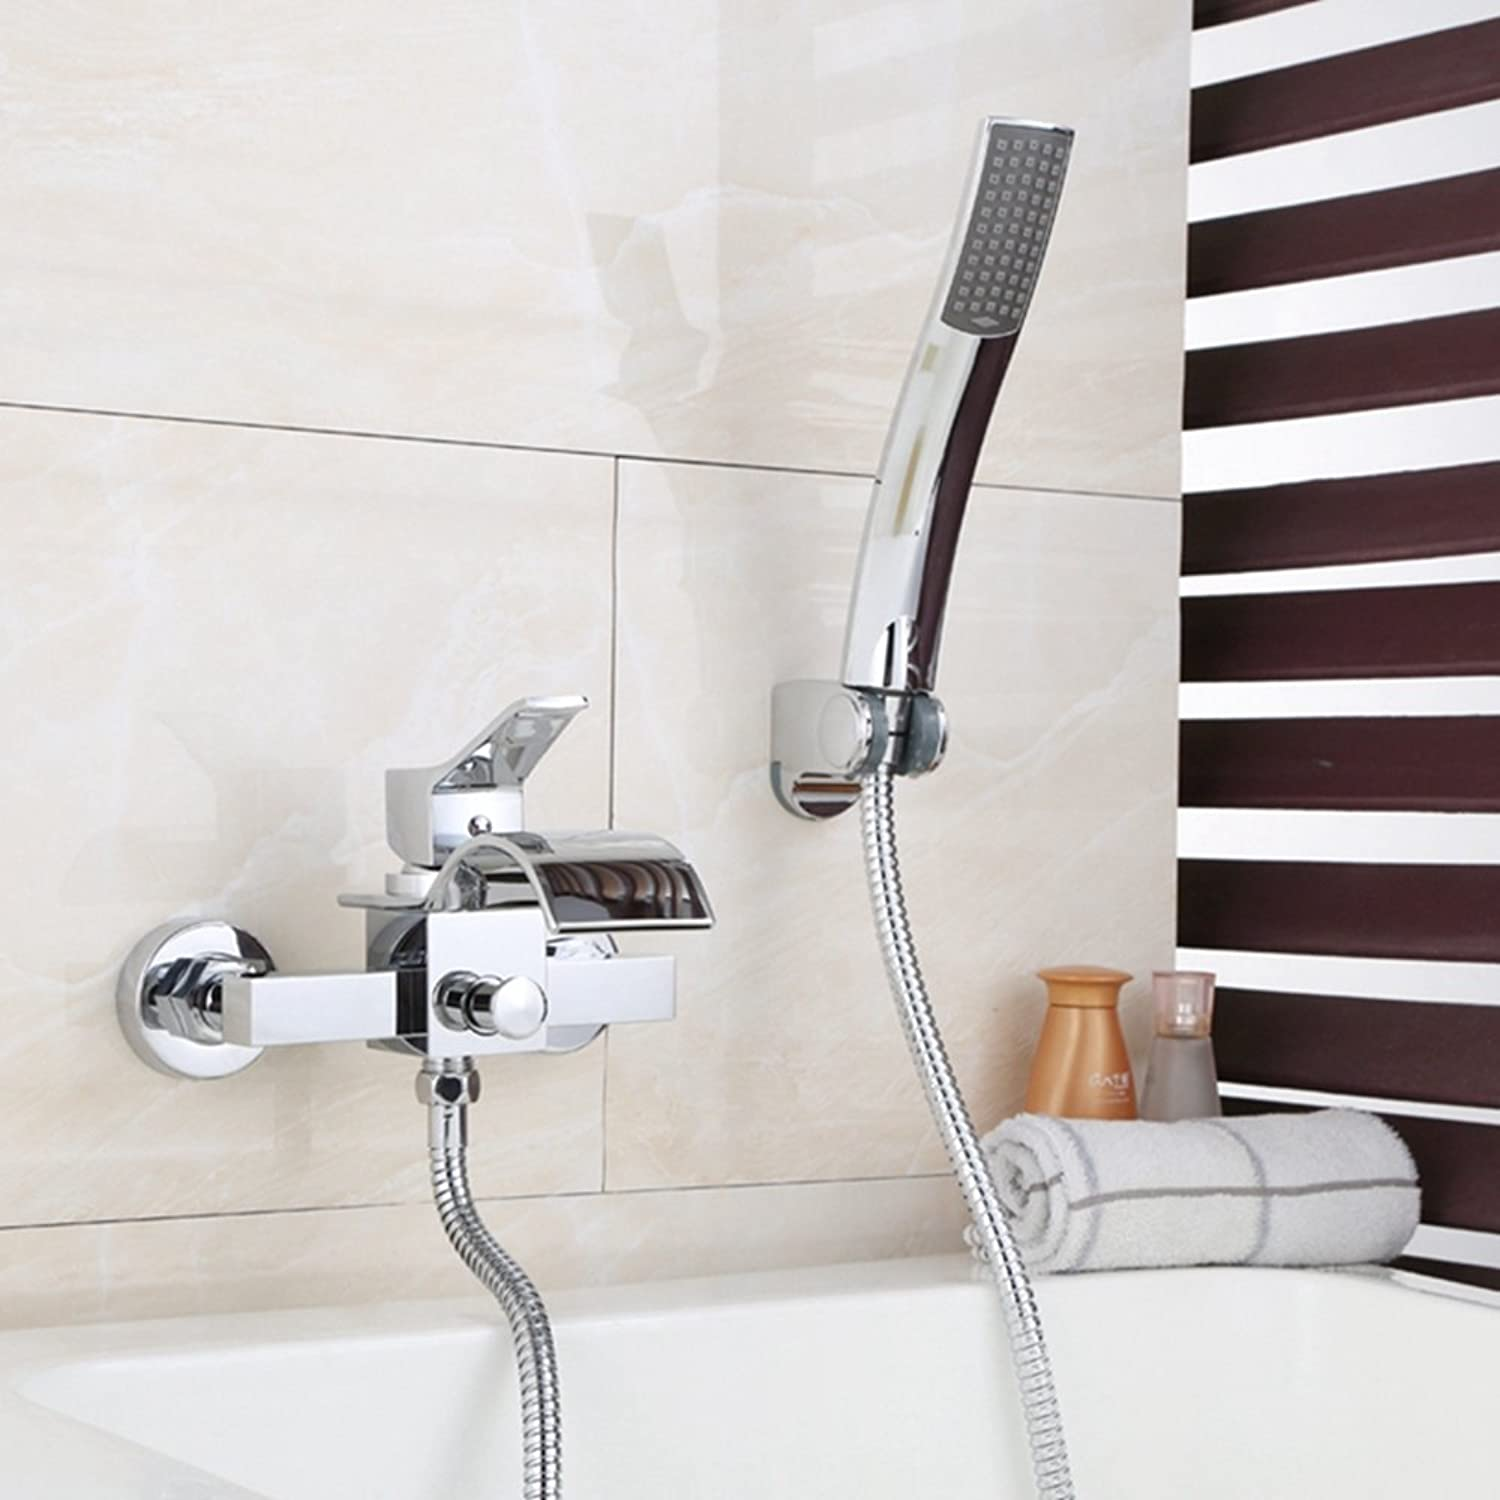 AA100 Bathroom Bathtub Mixing Valve Faucet Handheld Shower Wall Concealed Double Union Waterfall Bathtub Faucet